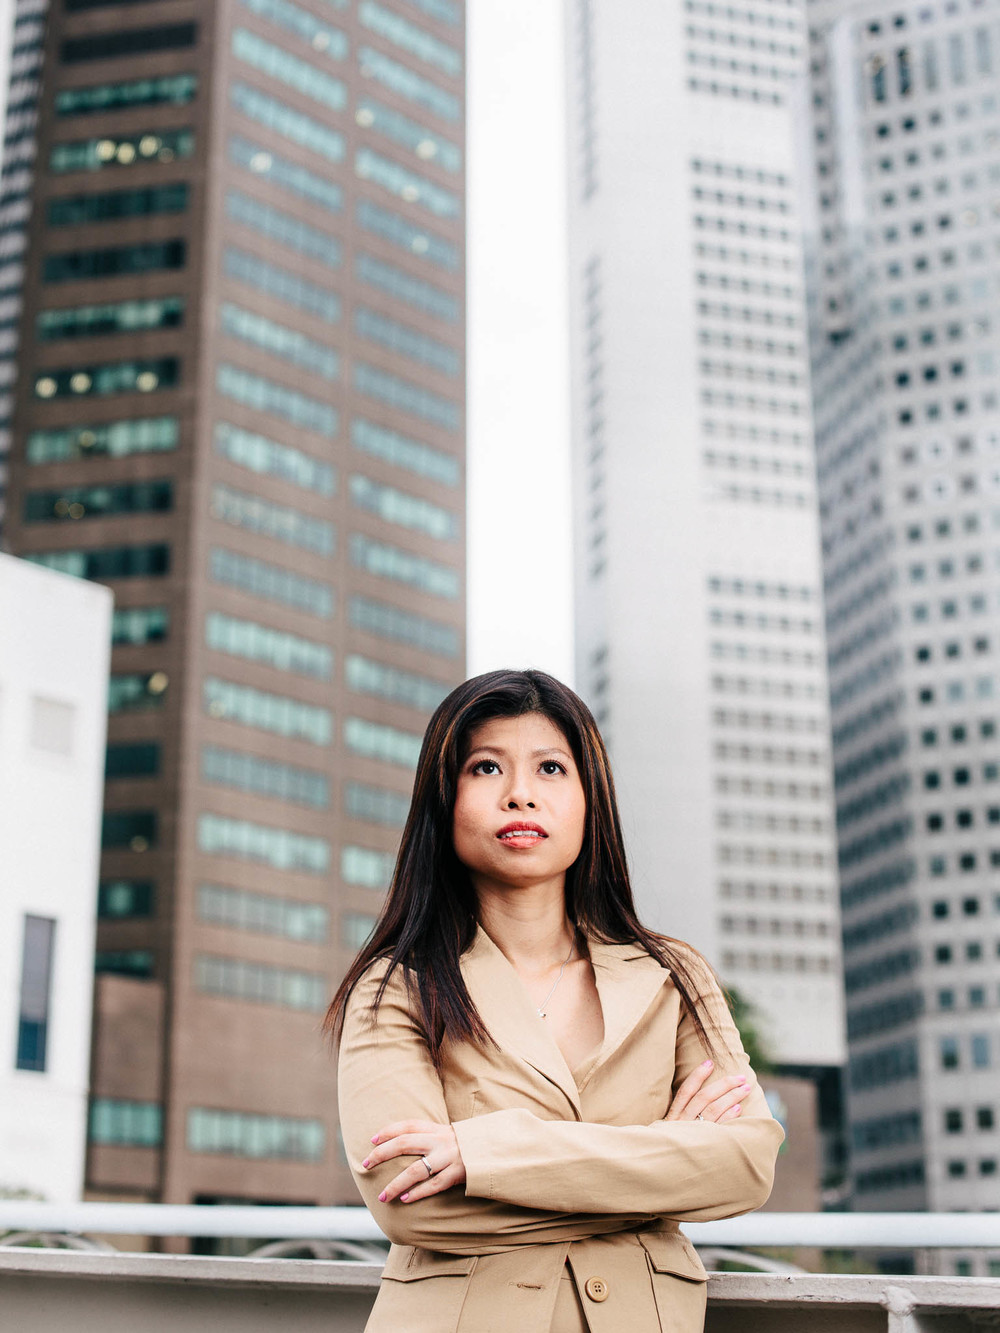 singapore-commercial-editorial-photographer-portraiture-cherlyn-lee-modus-rics-zakaria-zainal-03.jpg